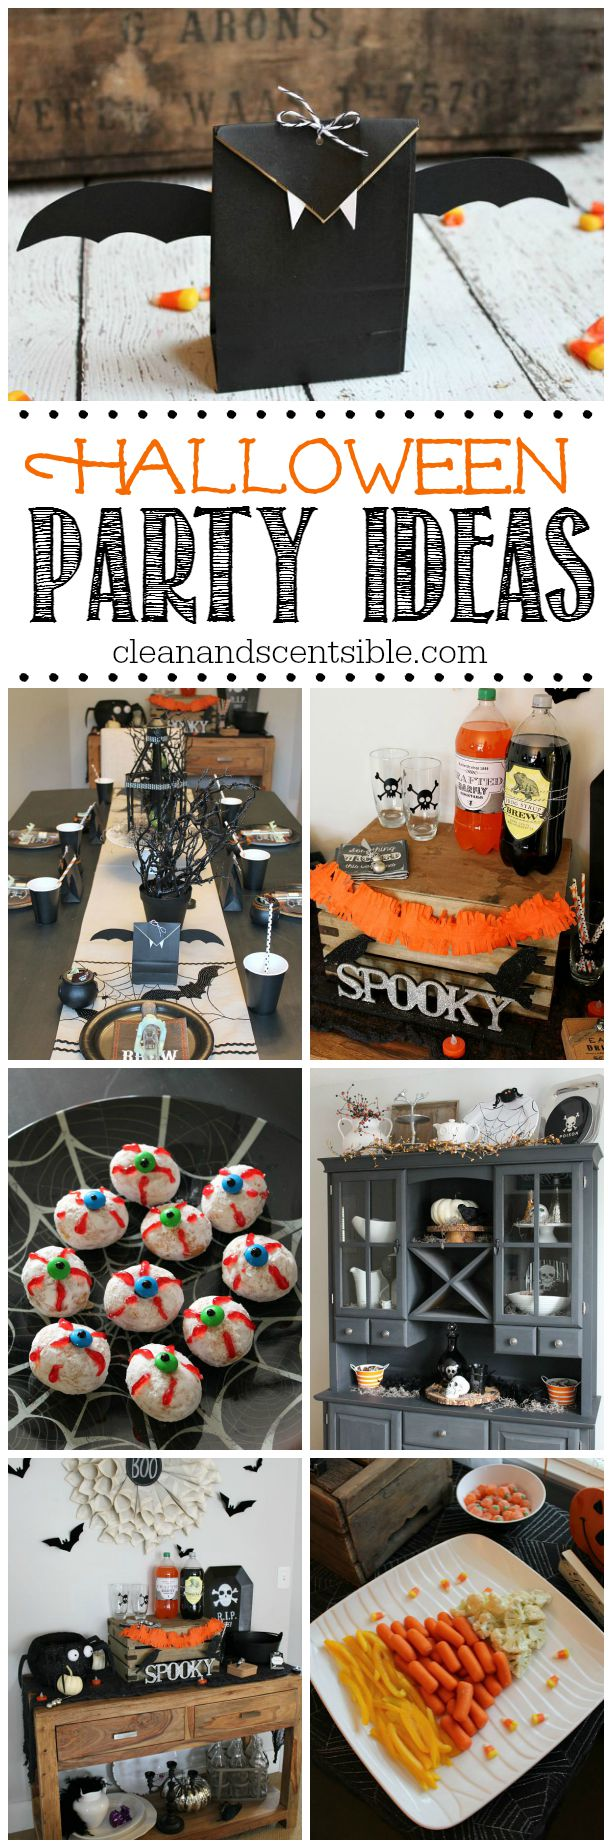 Awesome Halloween party ideas! Cute Halloween food and party decor!